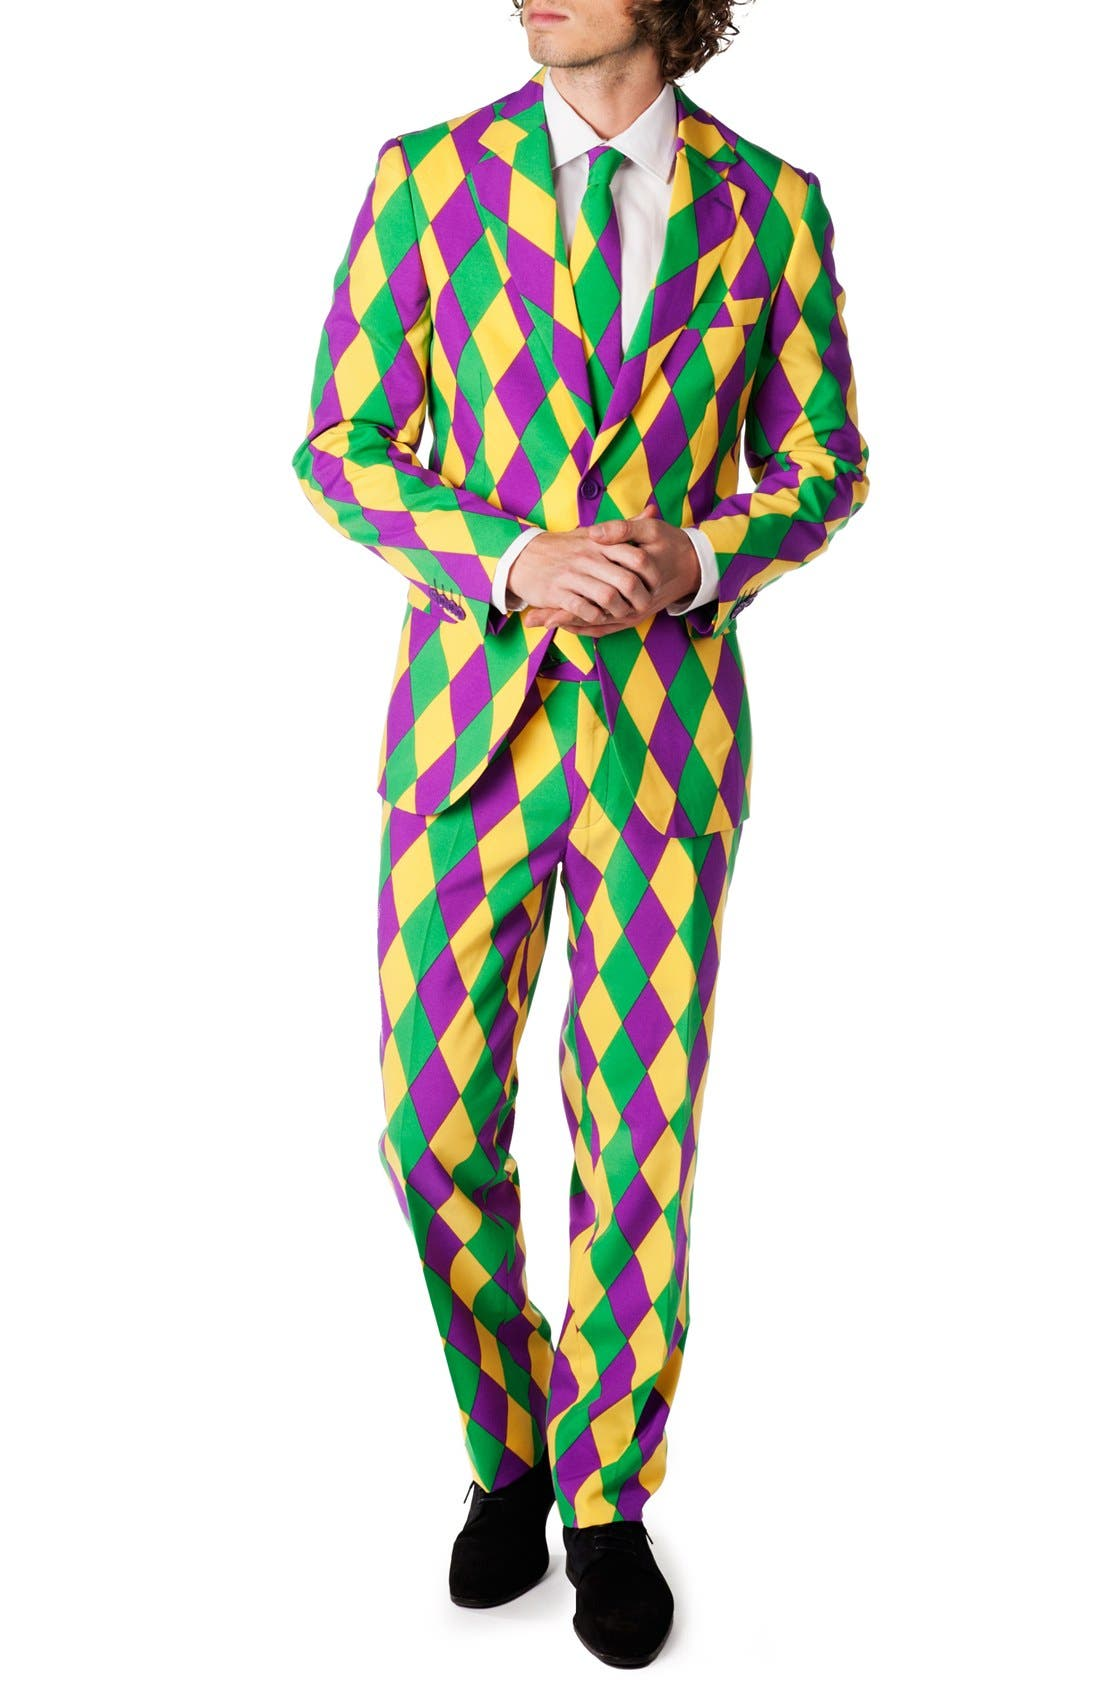 'Harleking' Trim Fit Suit with Tie,                         Main,                         color,